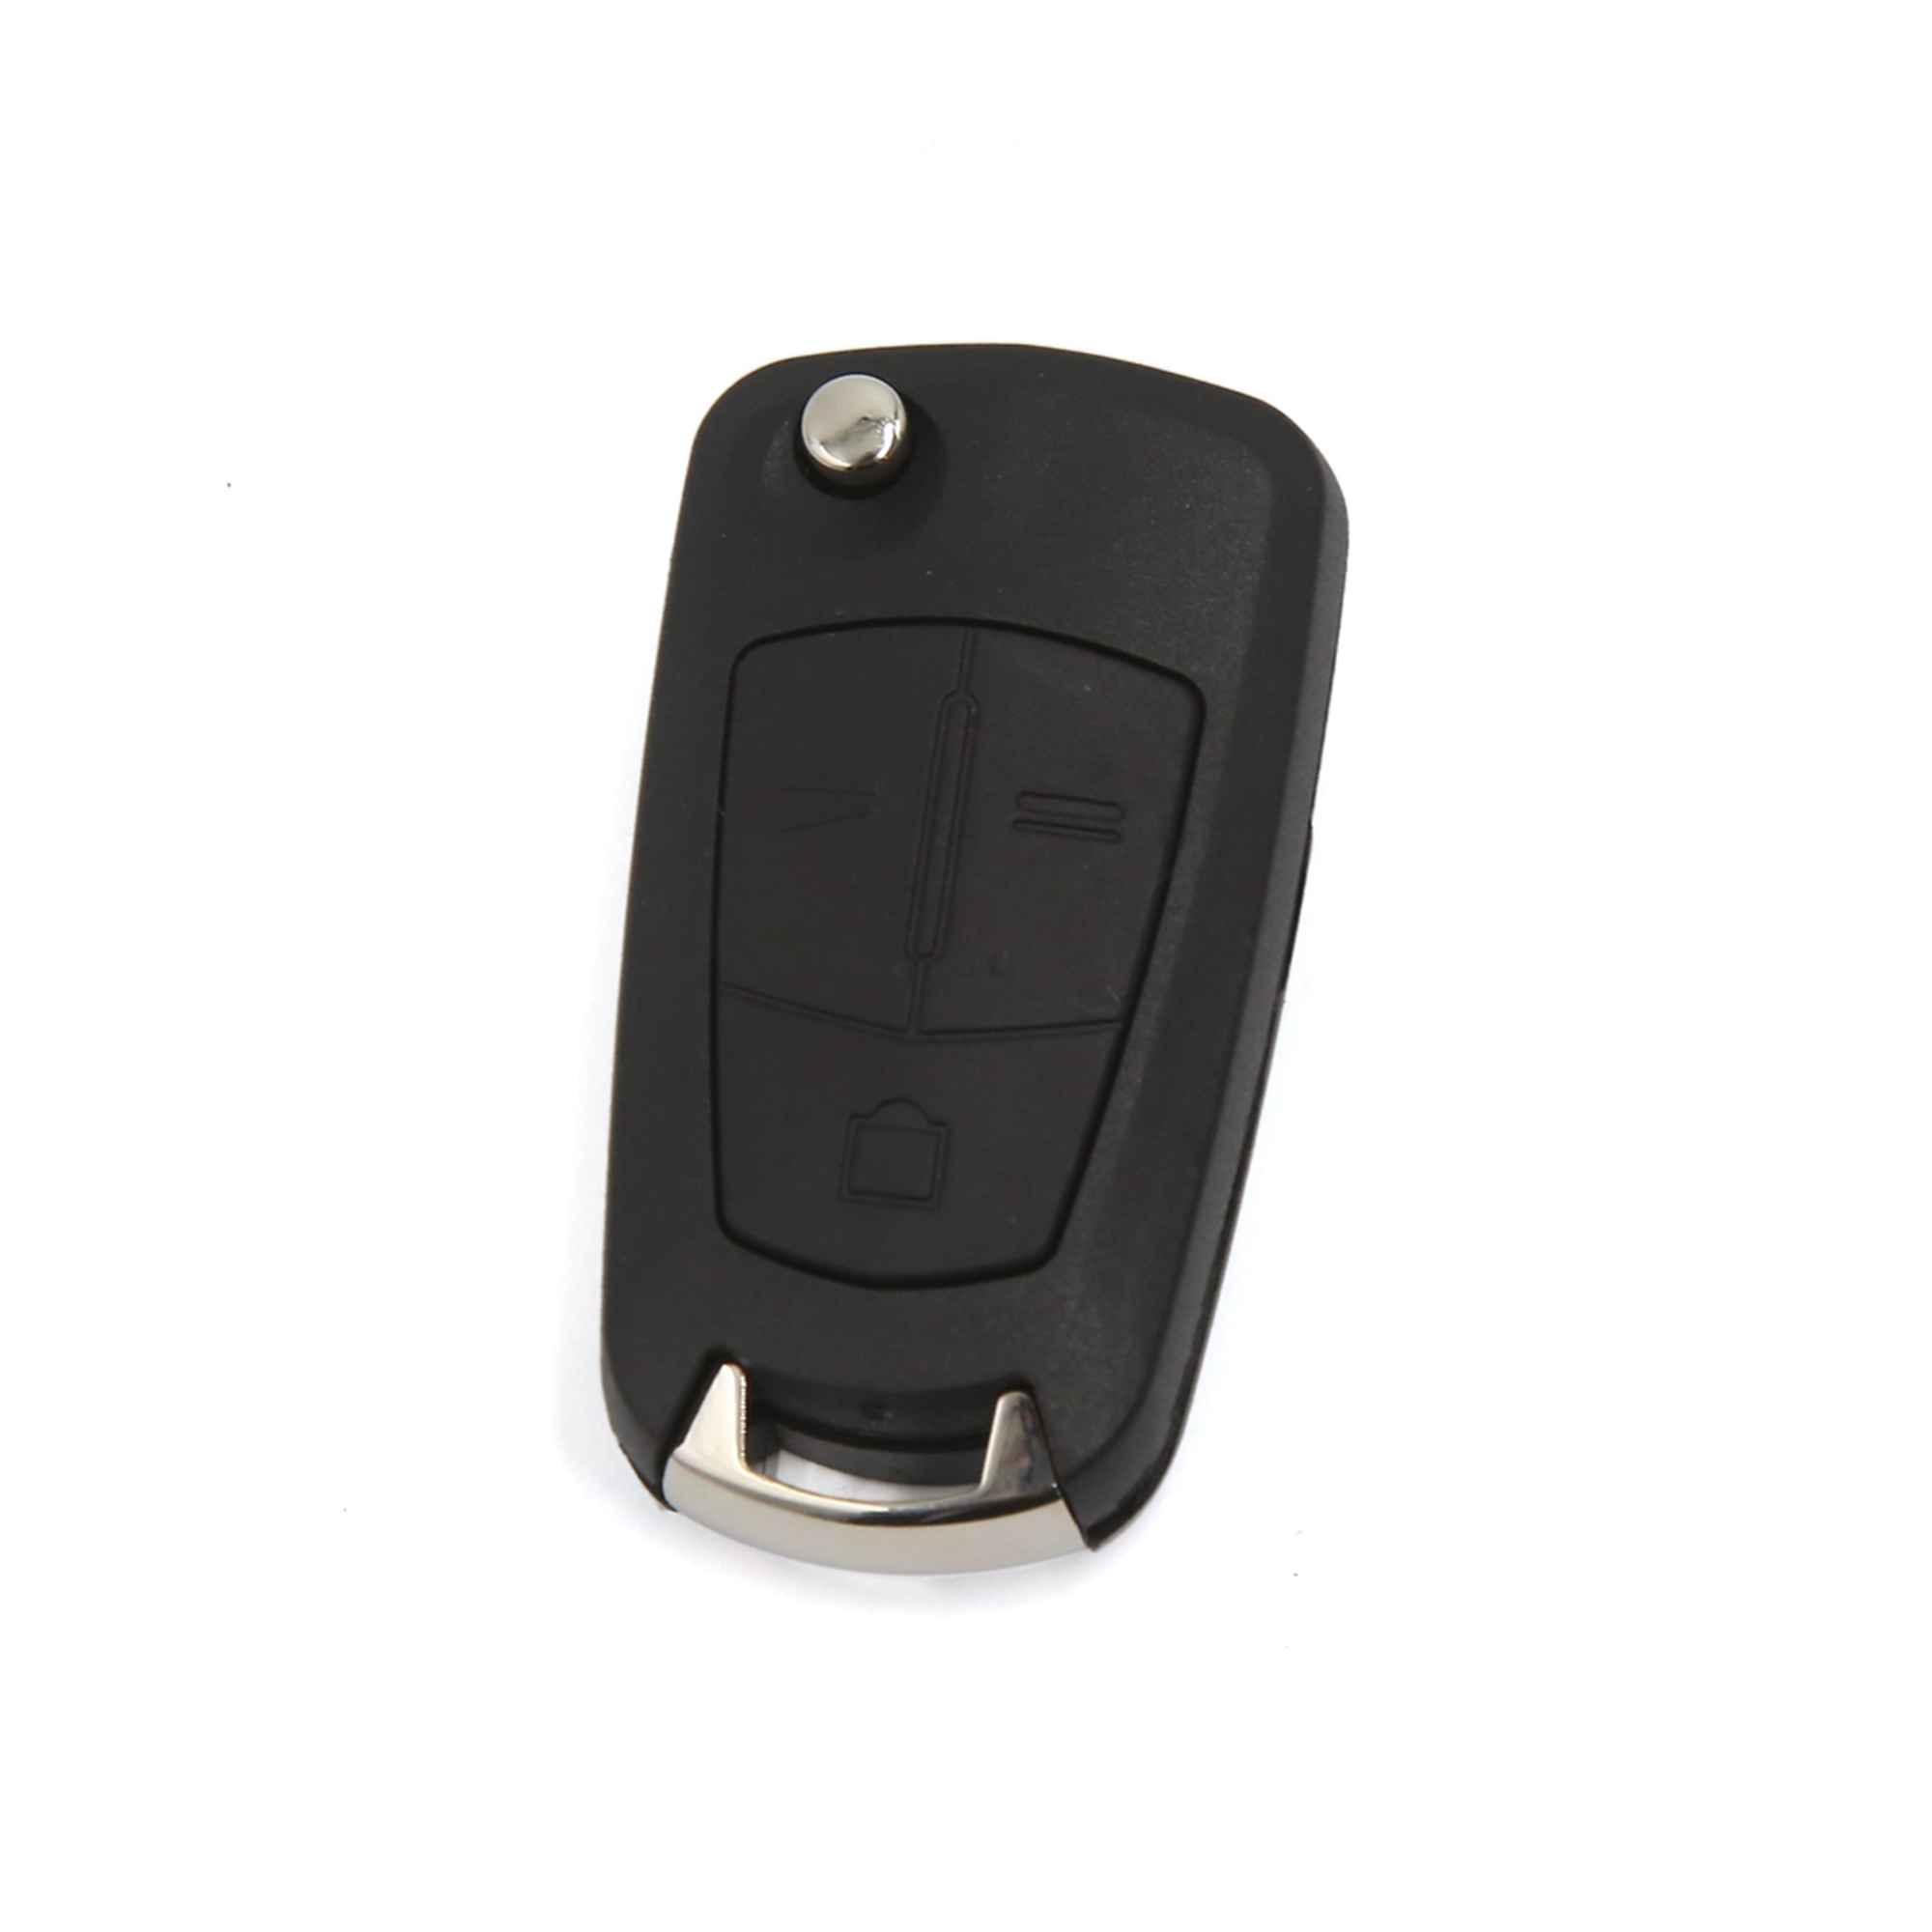 3 Buttons Flip Folding Smart Key Fob Remote Case for Vauxhall Opel Vectra Astra